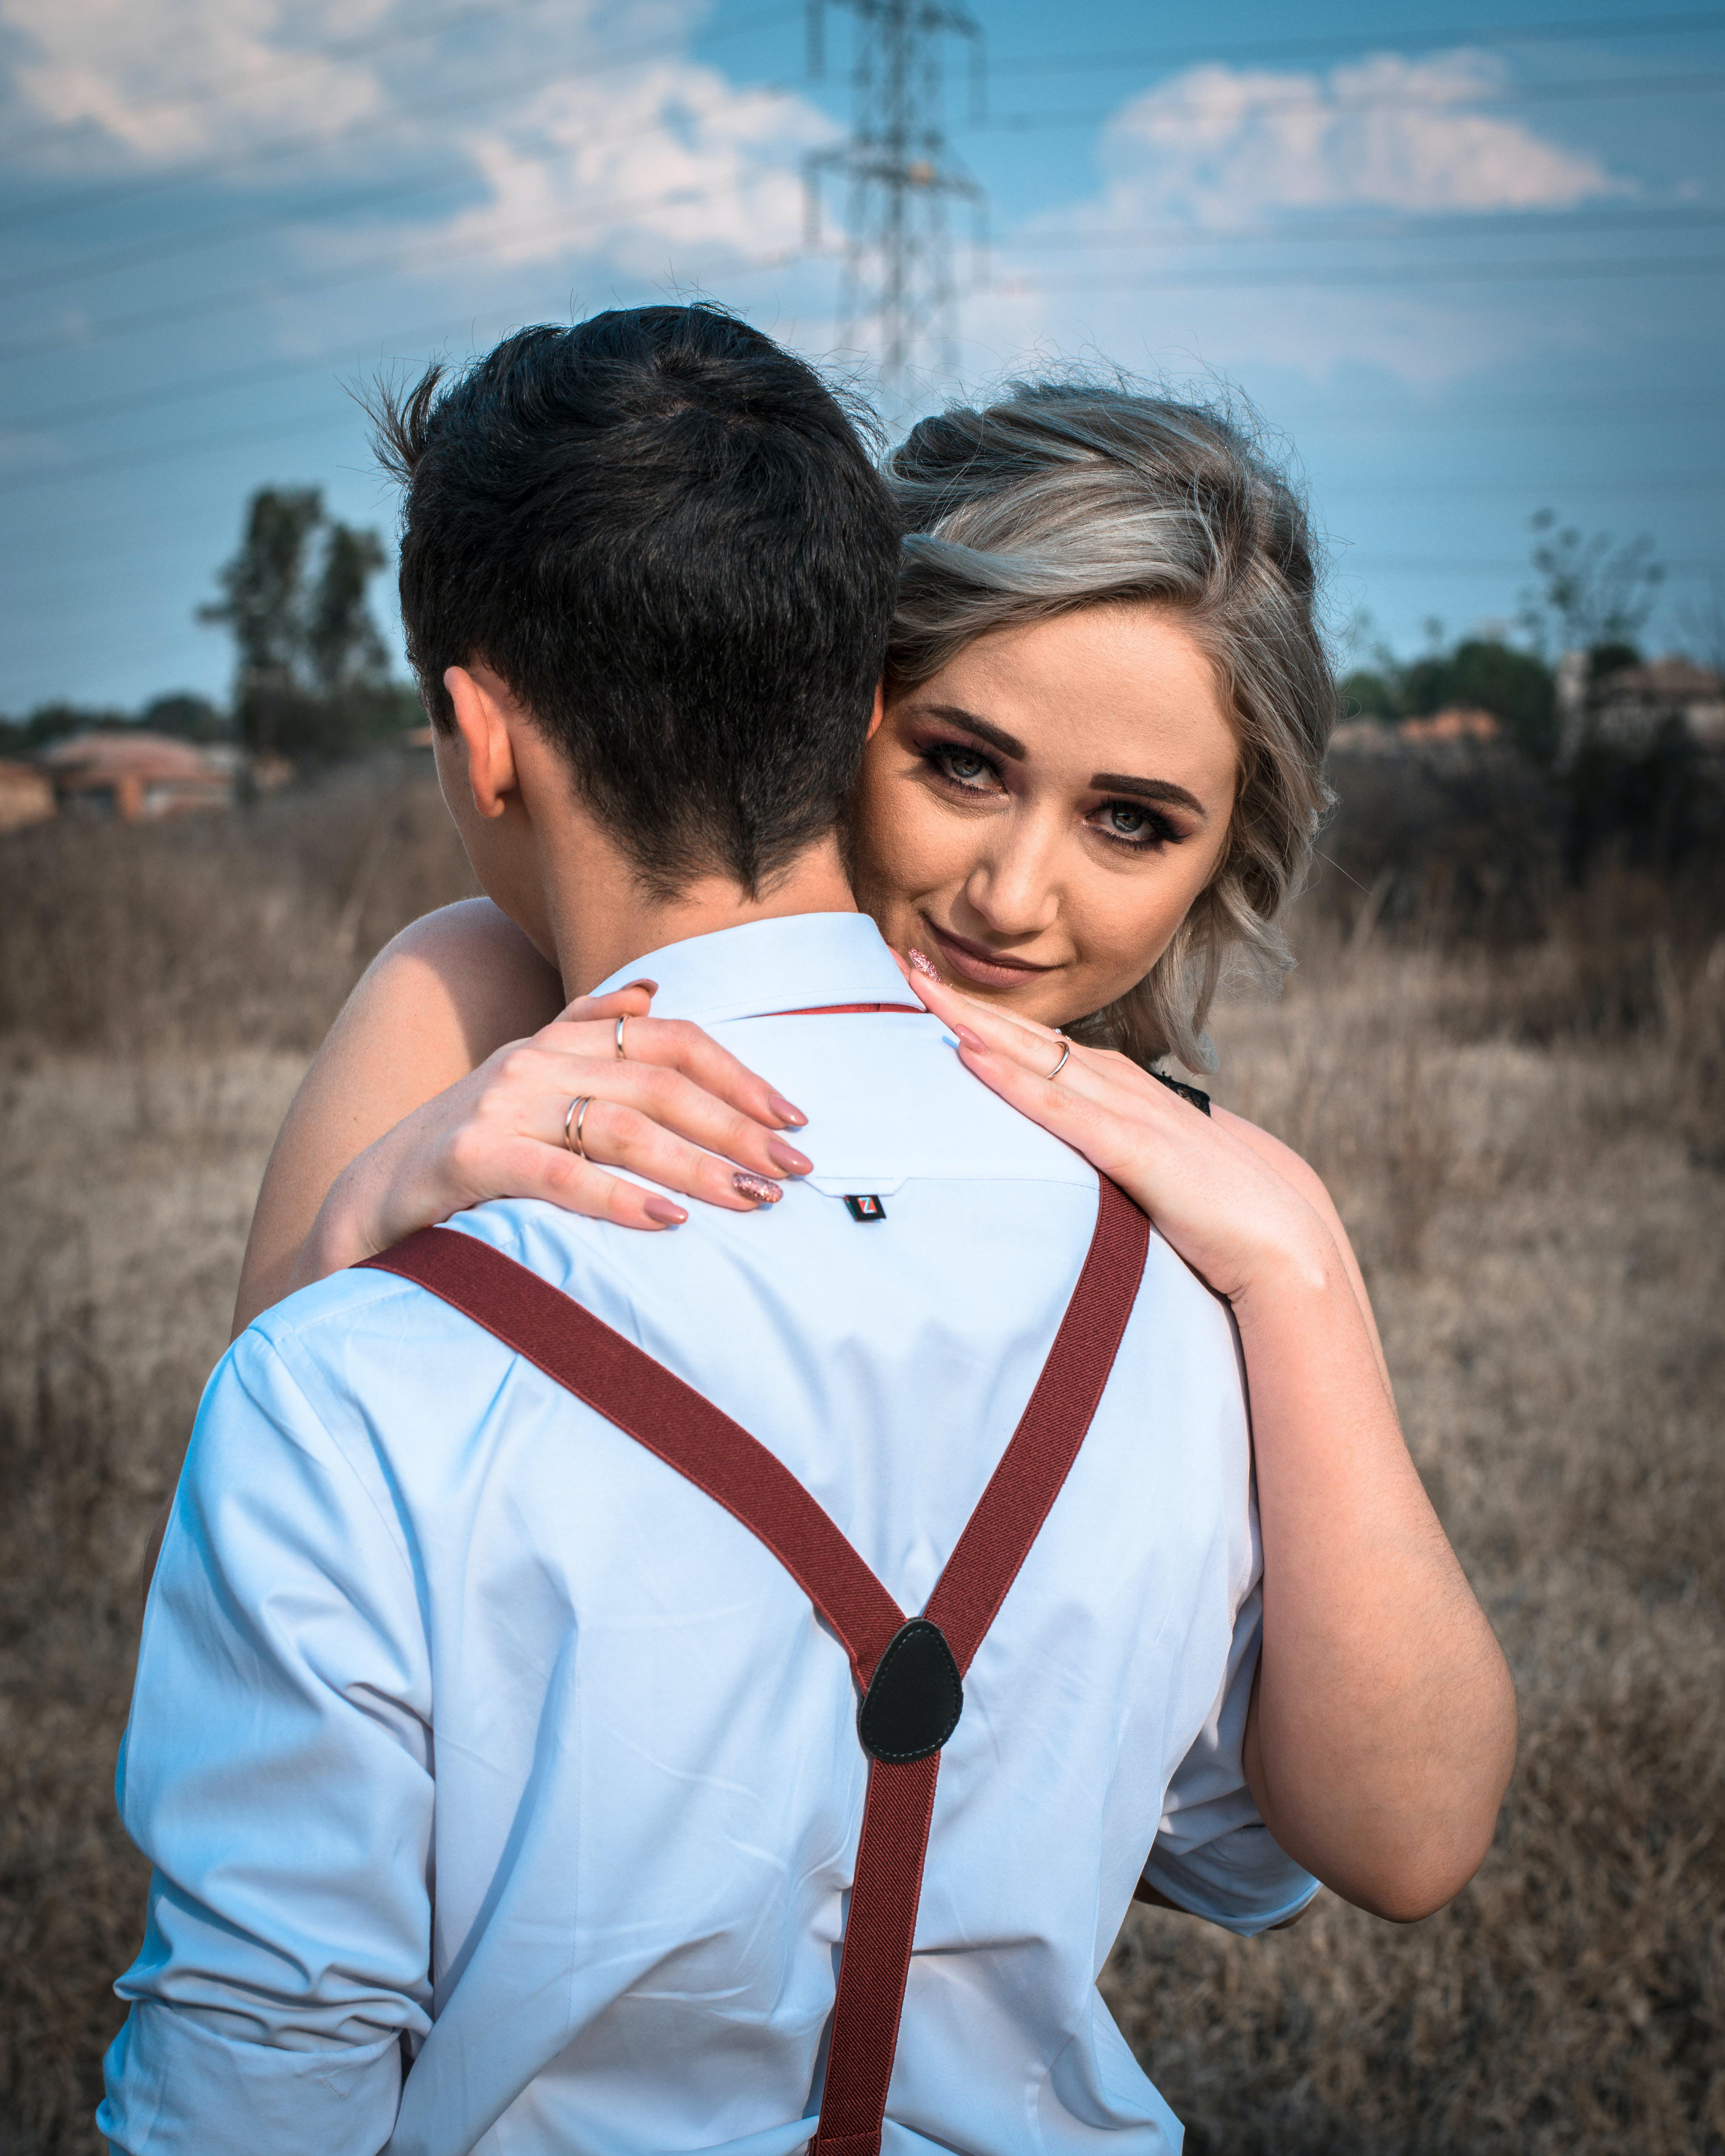 Woman and Man Hugging Each Other